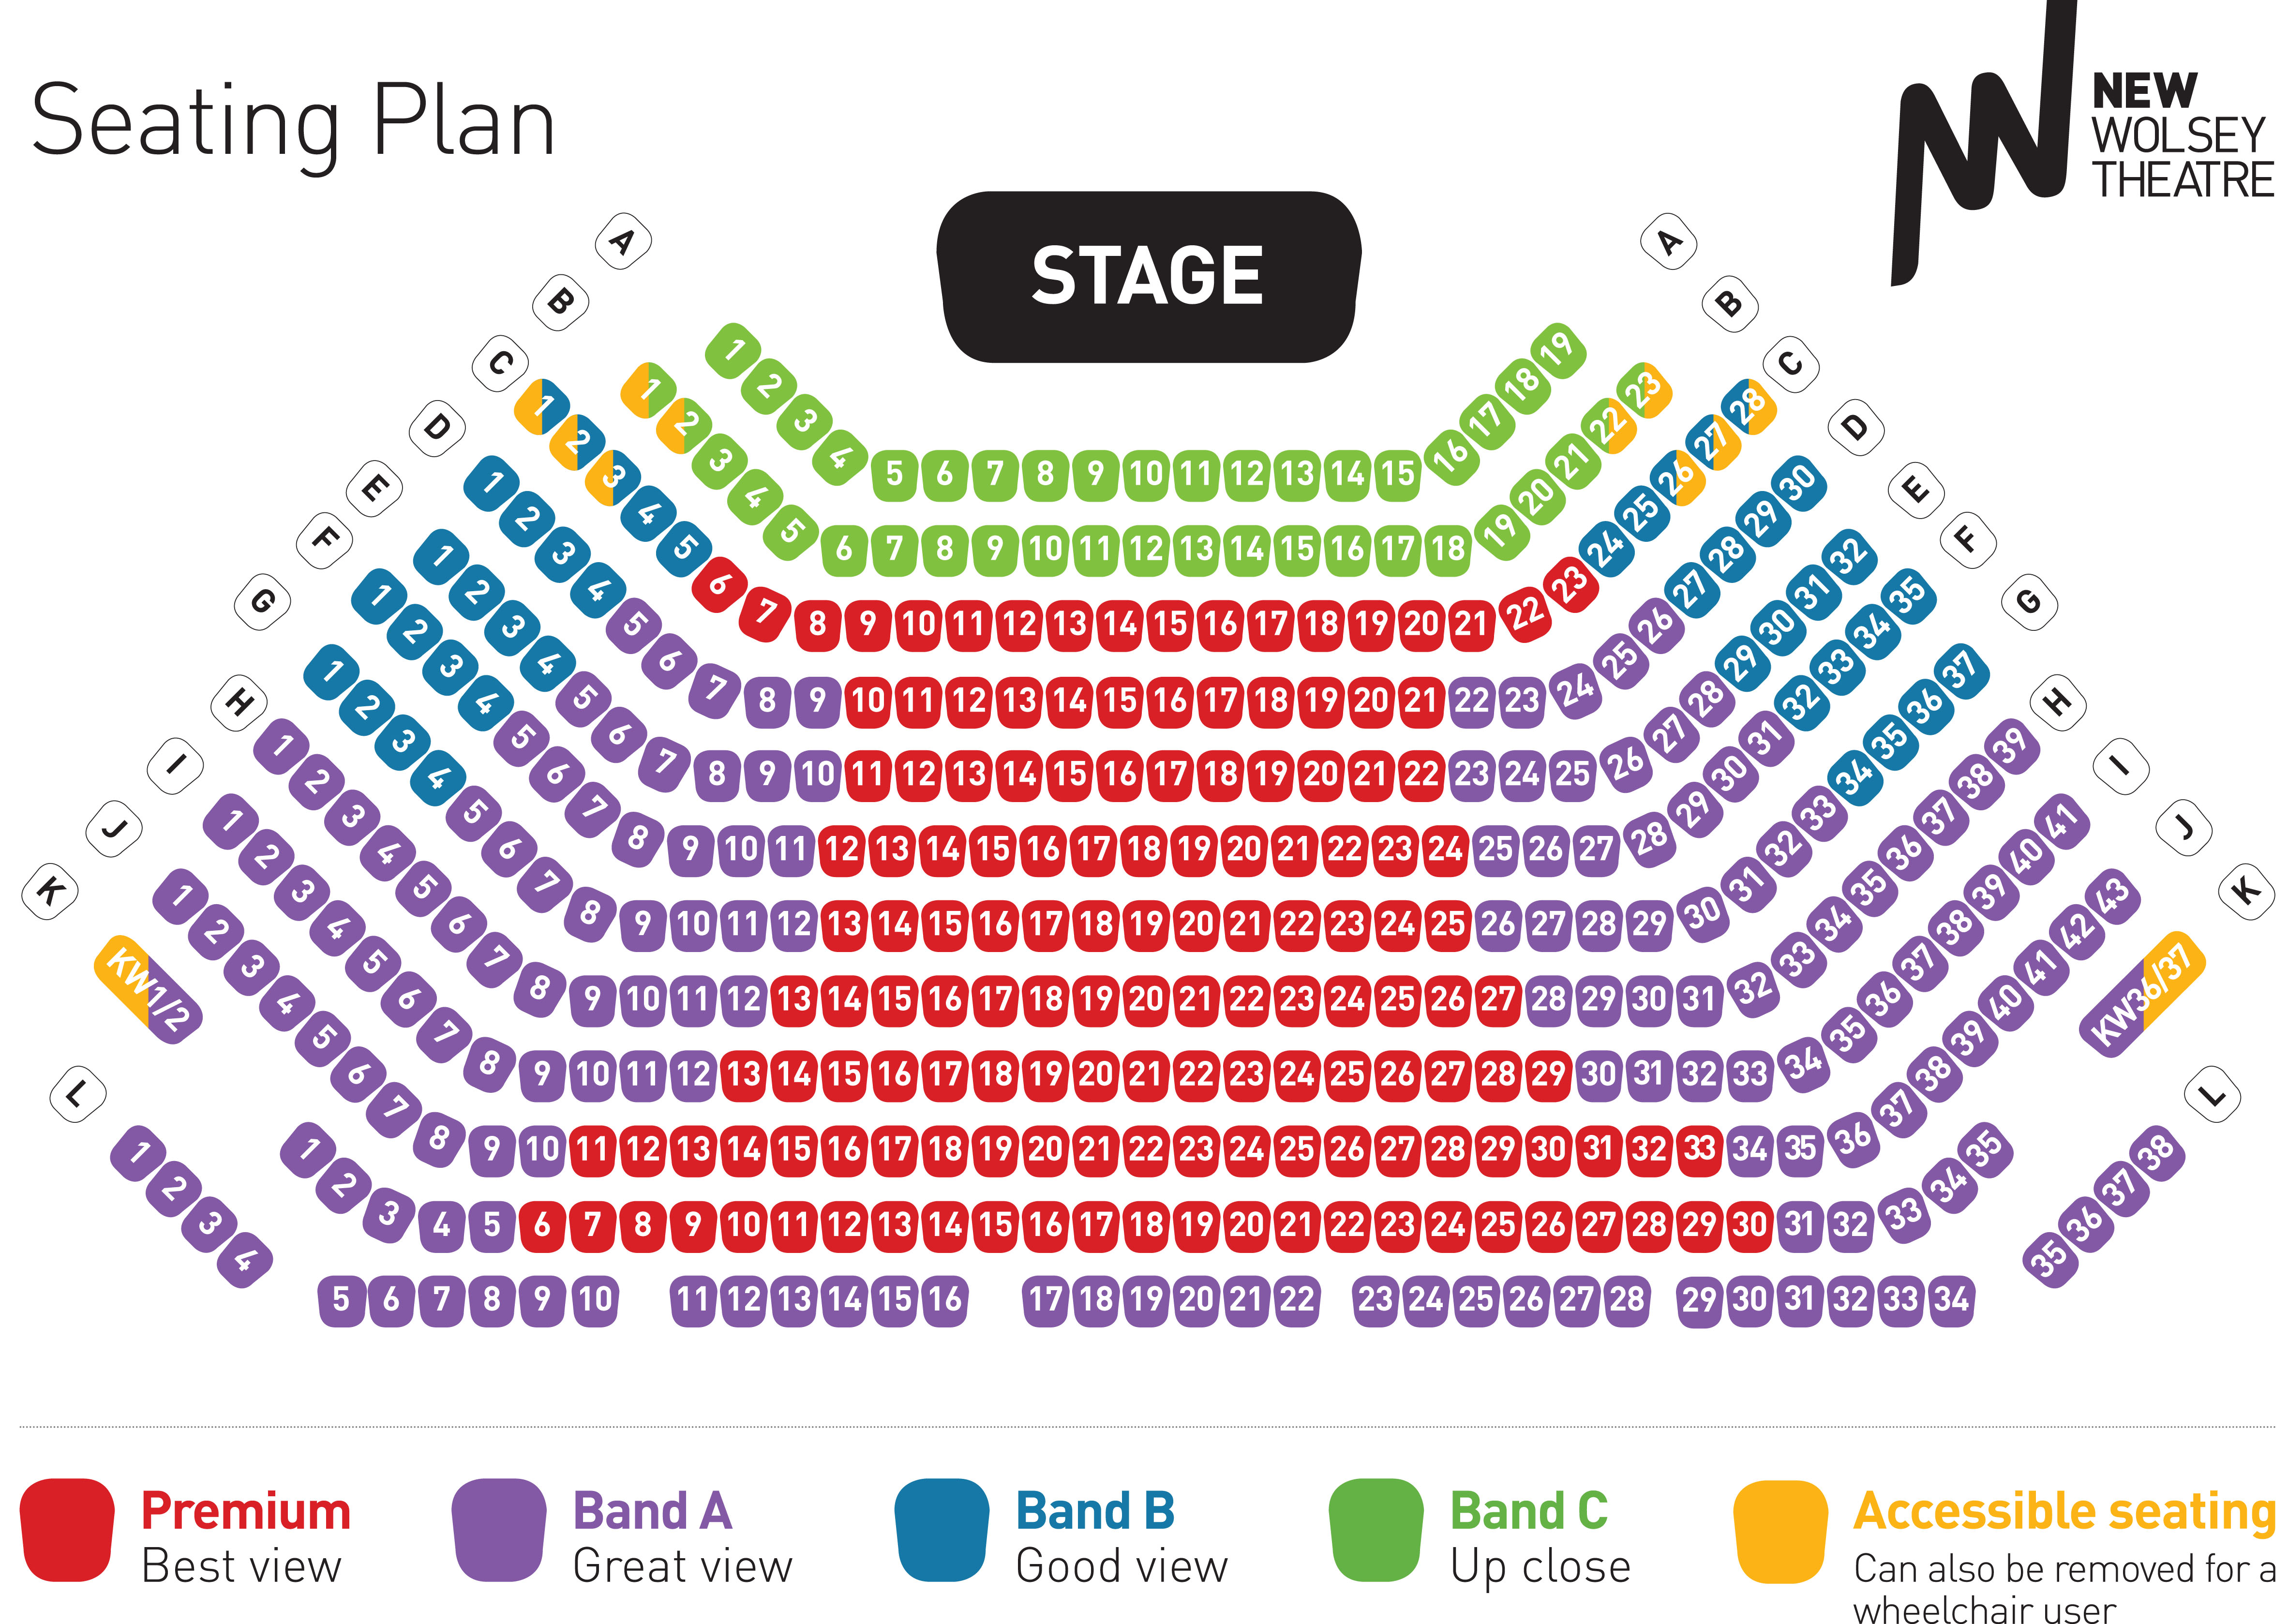 Seating Amp Price Bands The New Wolsey Theatre Ipswich